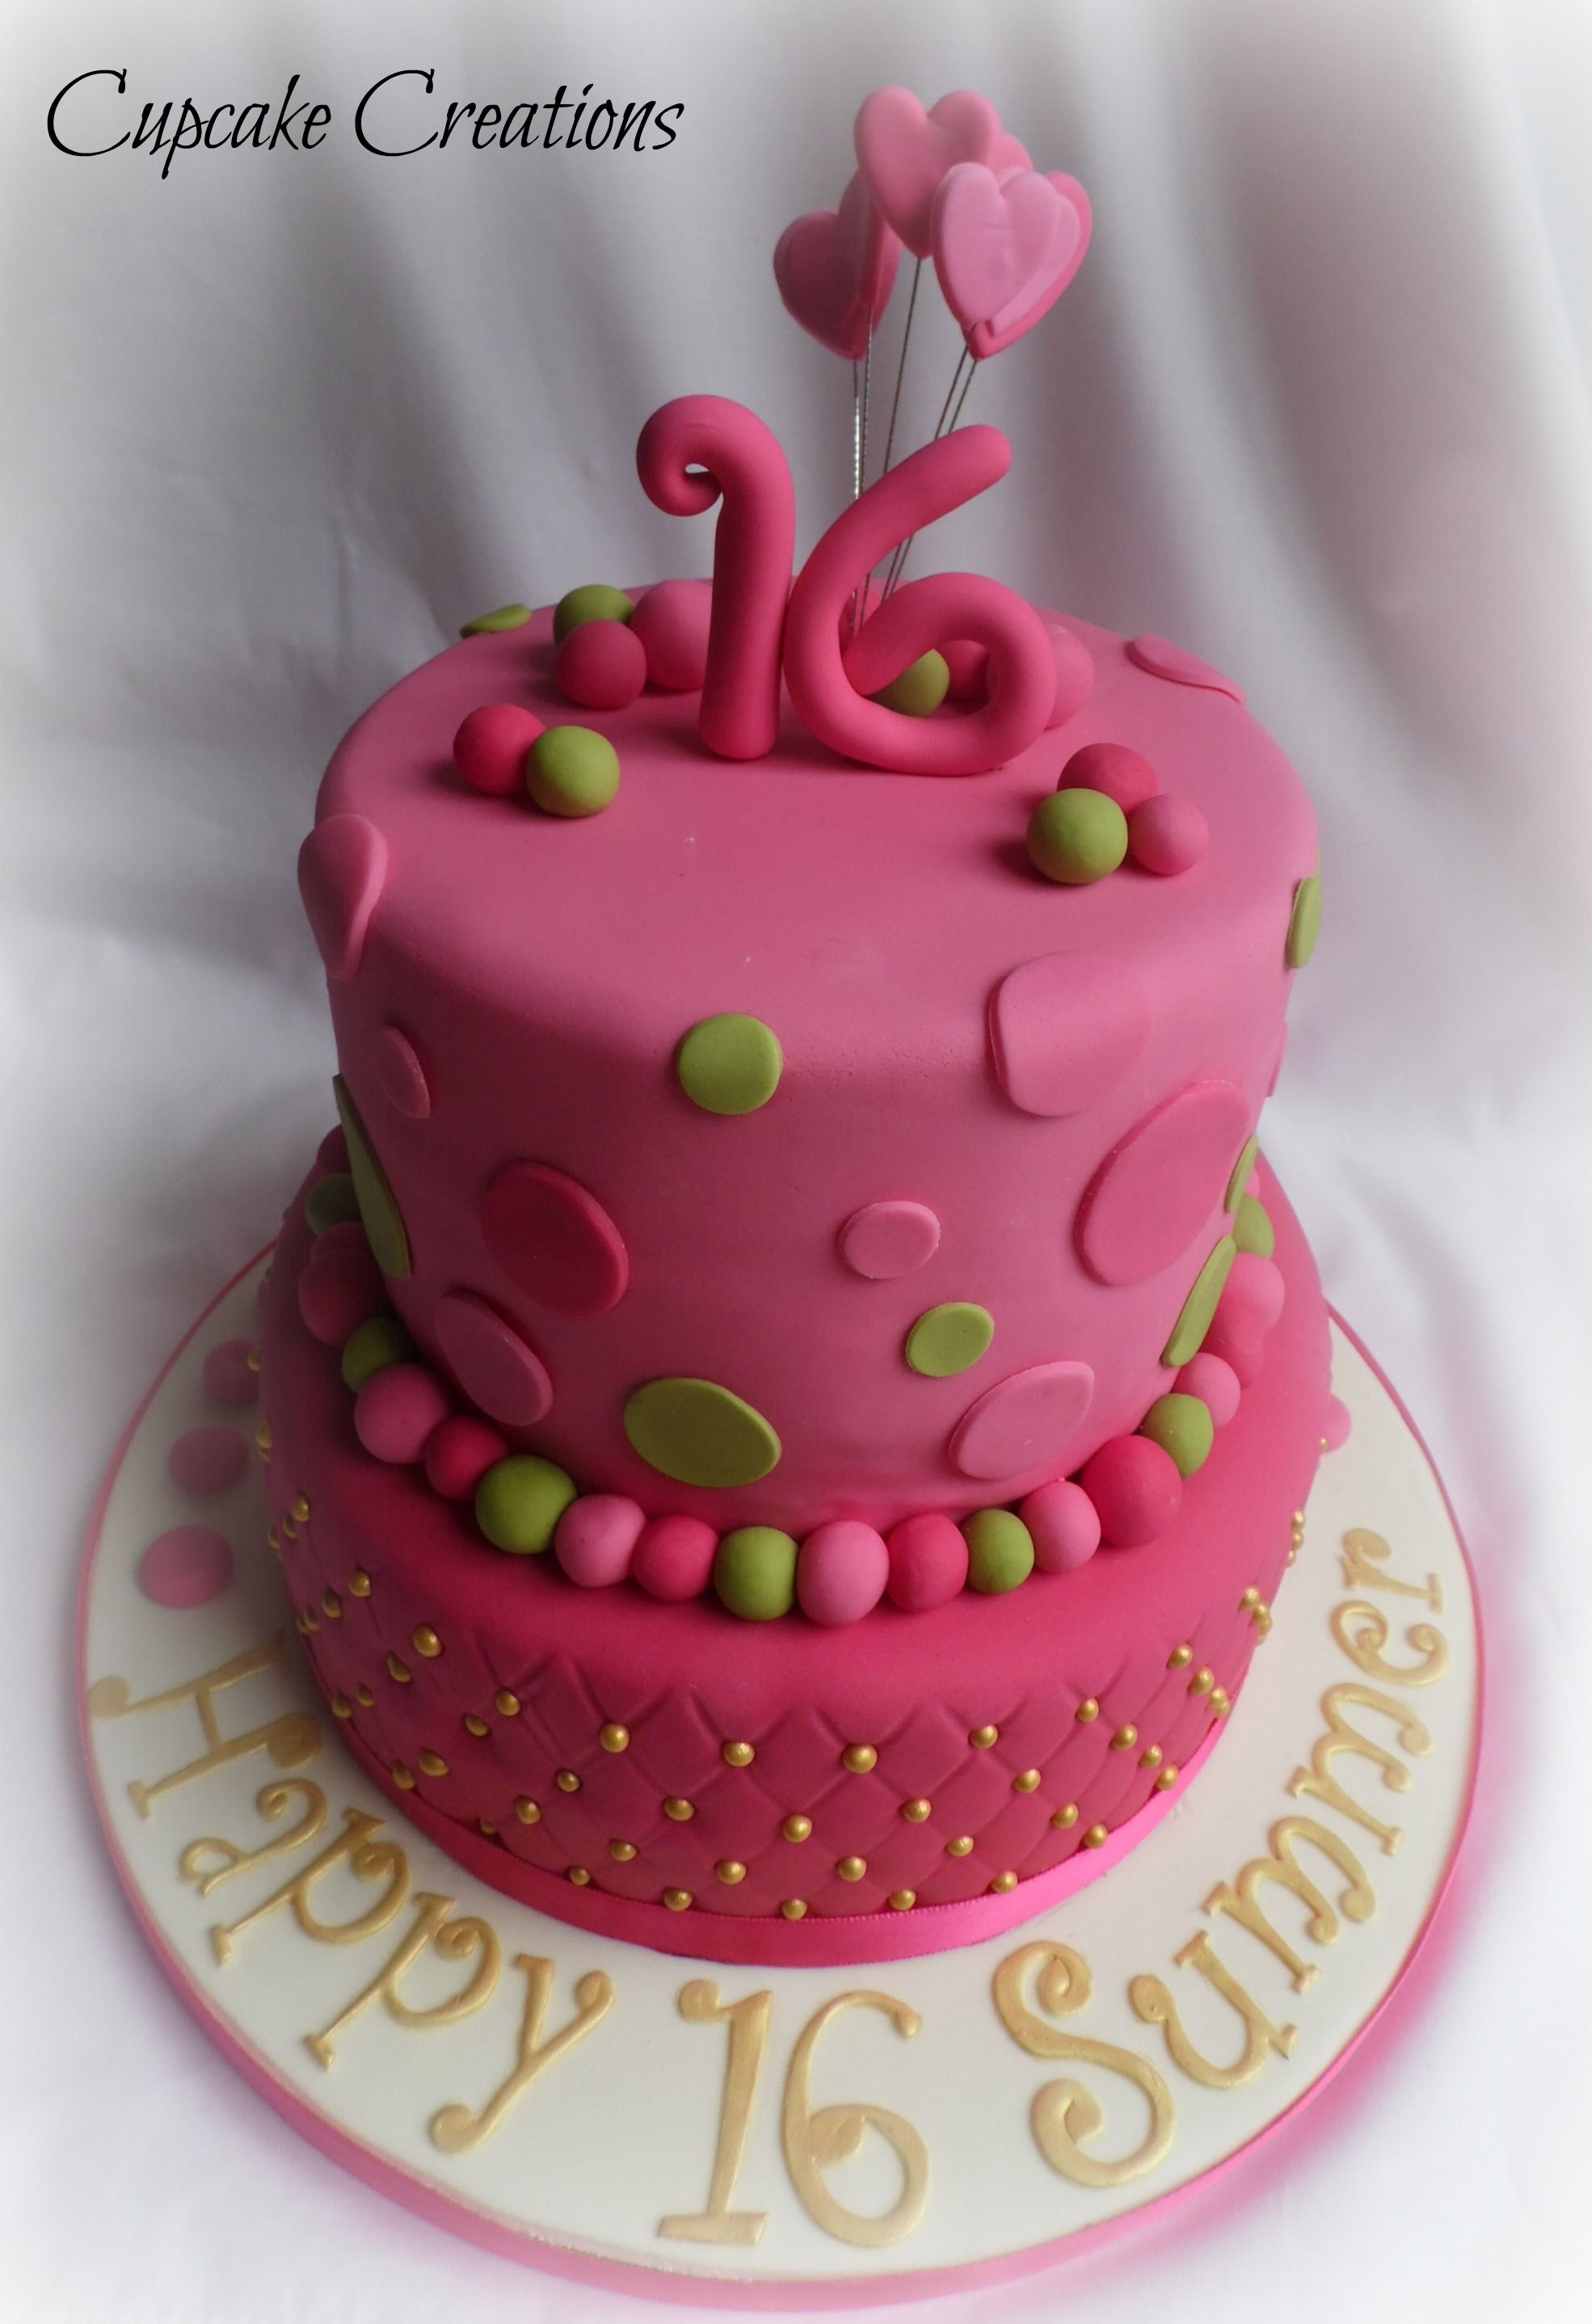 16th Birthday 2 Tier Cake